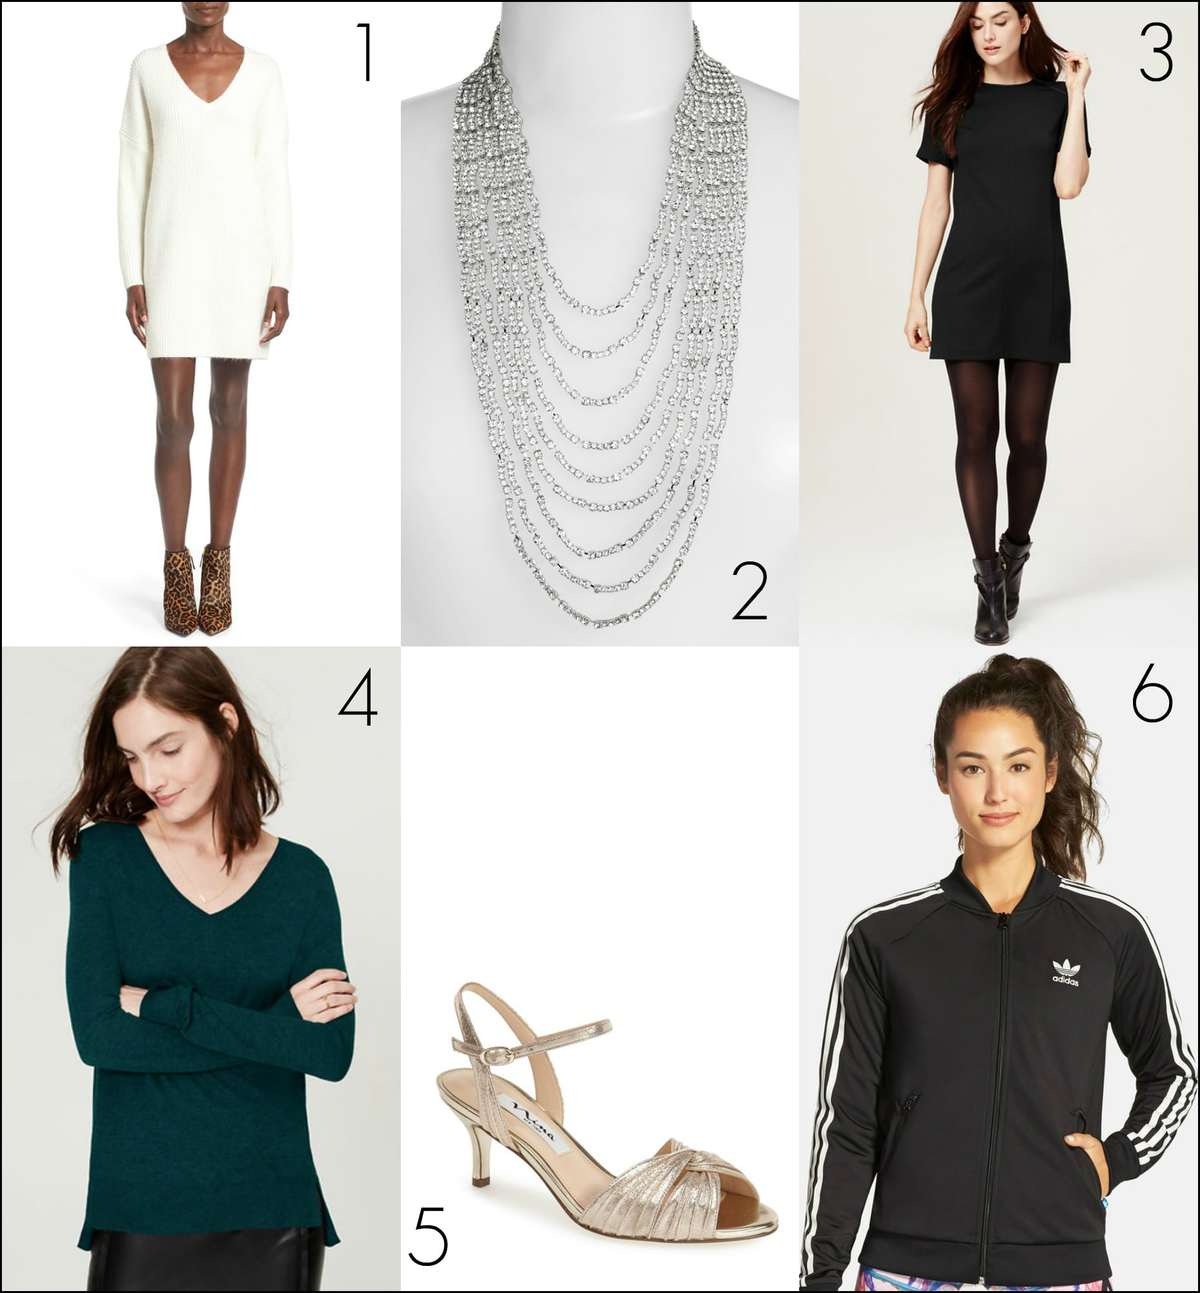 Wardrobe Oxygen - Recent Fashion Purchases Hits and Misses